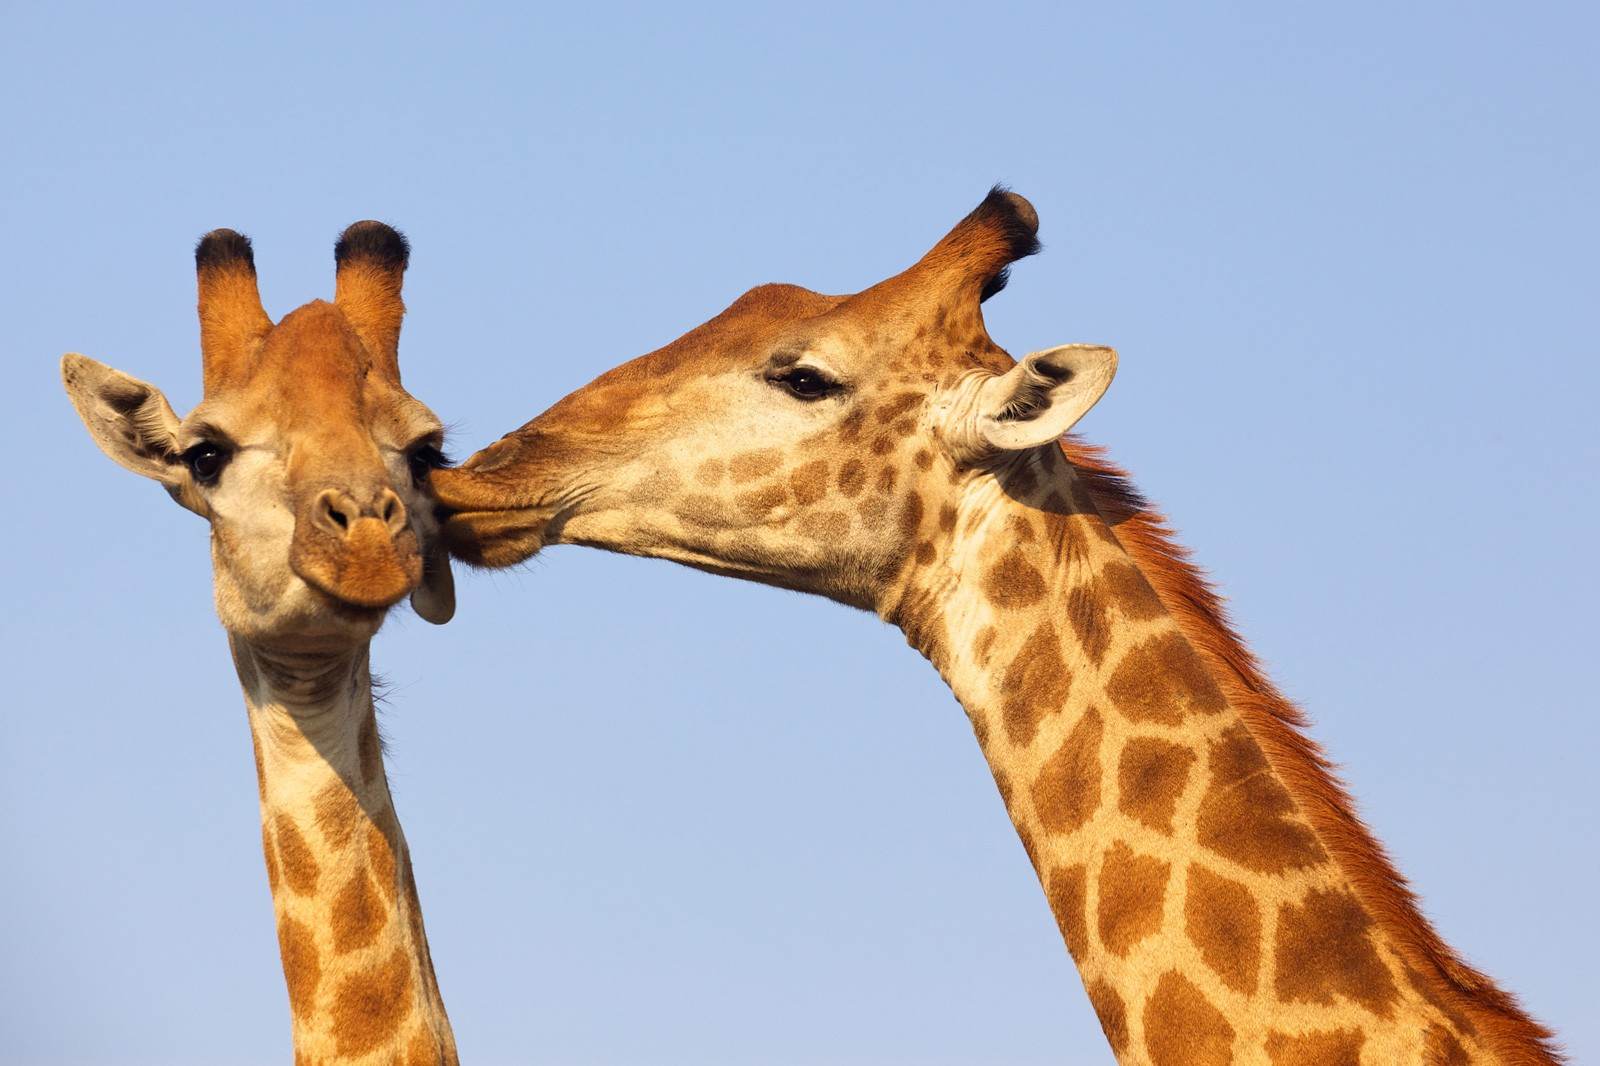 Symbolic Meaning of the Giraffe